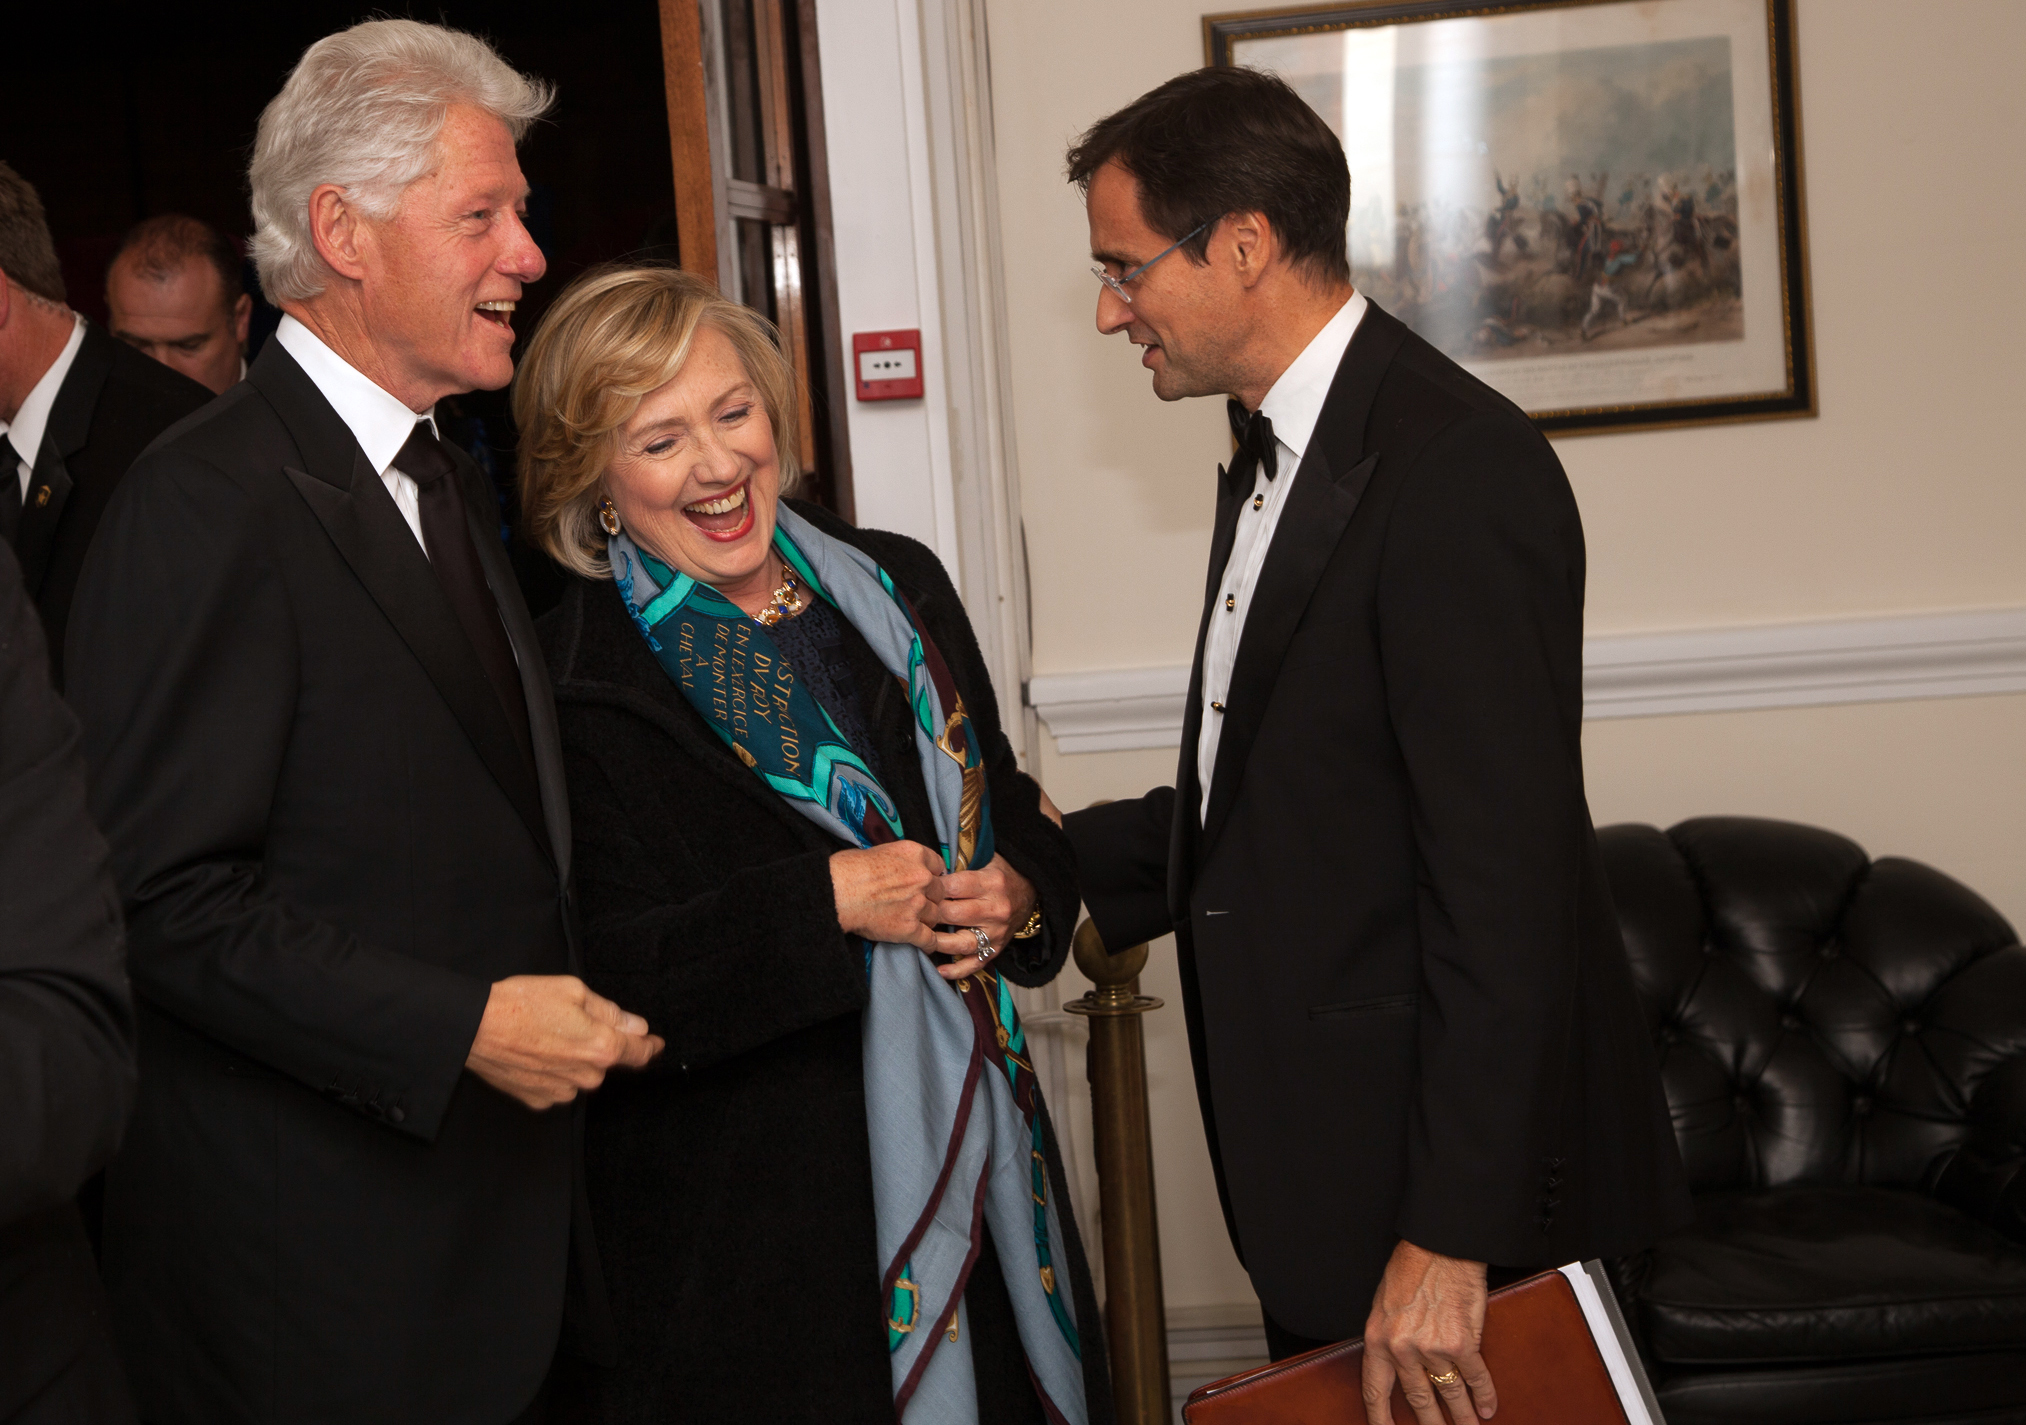 hillary_rodham_clinton_and_bill_clinton_chatham_house_prize_2013_award_ceremony_10224270073